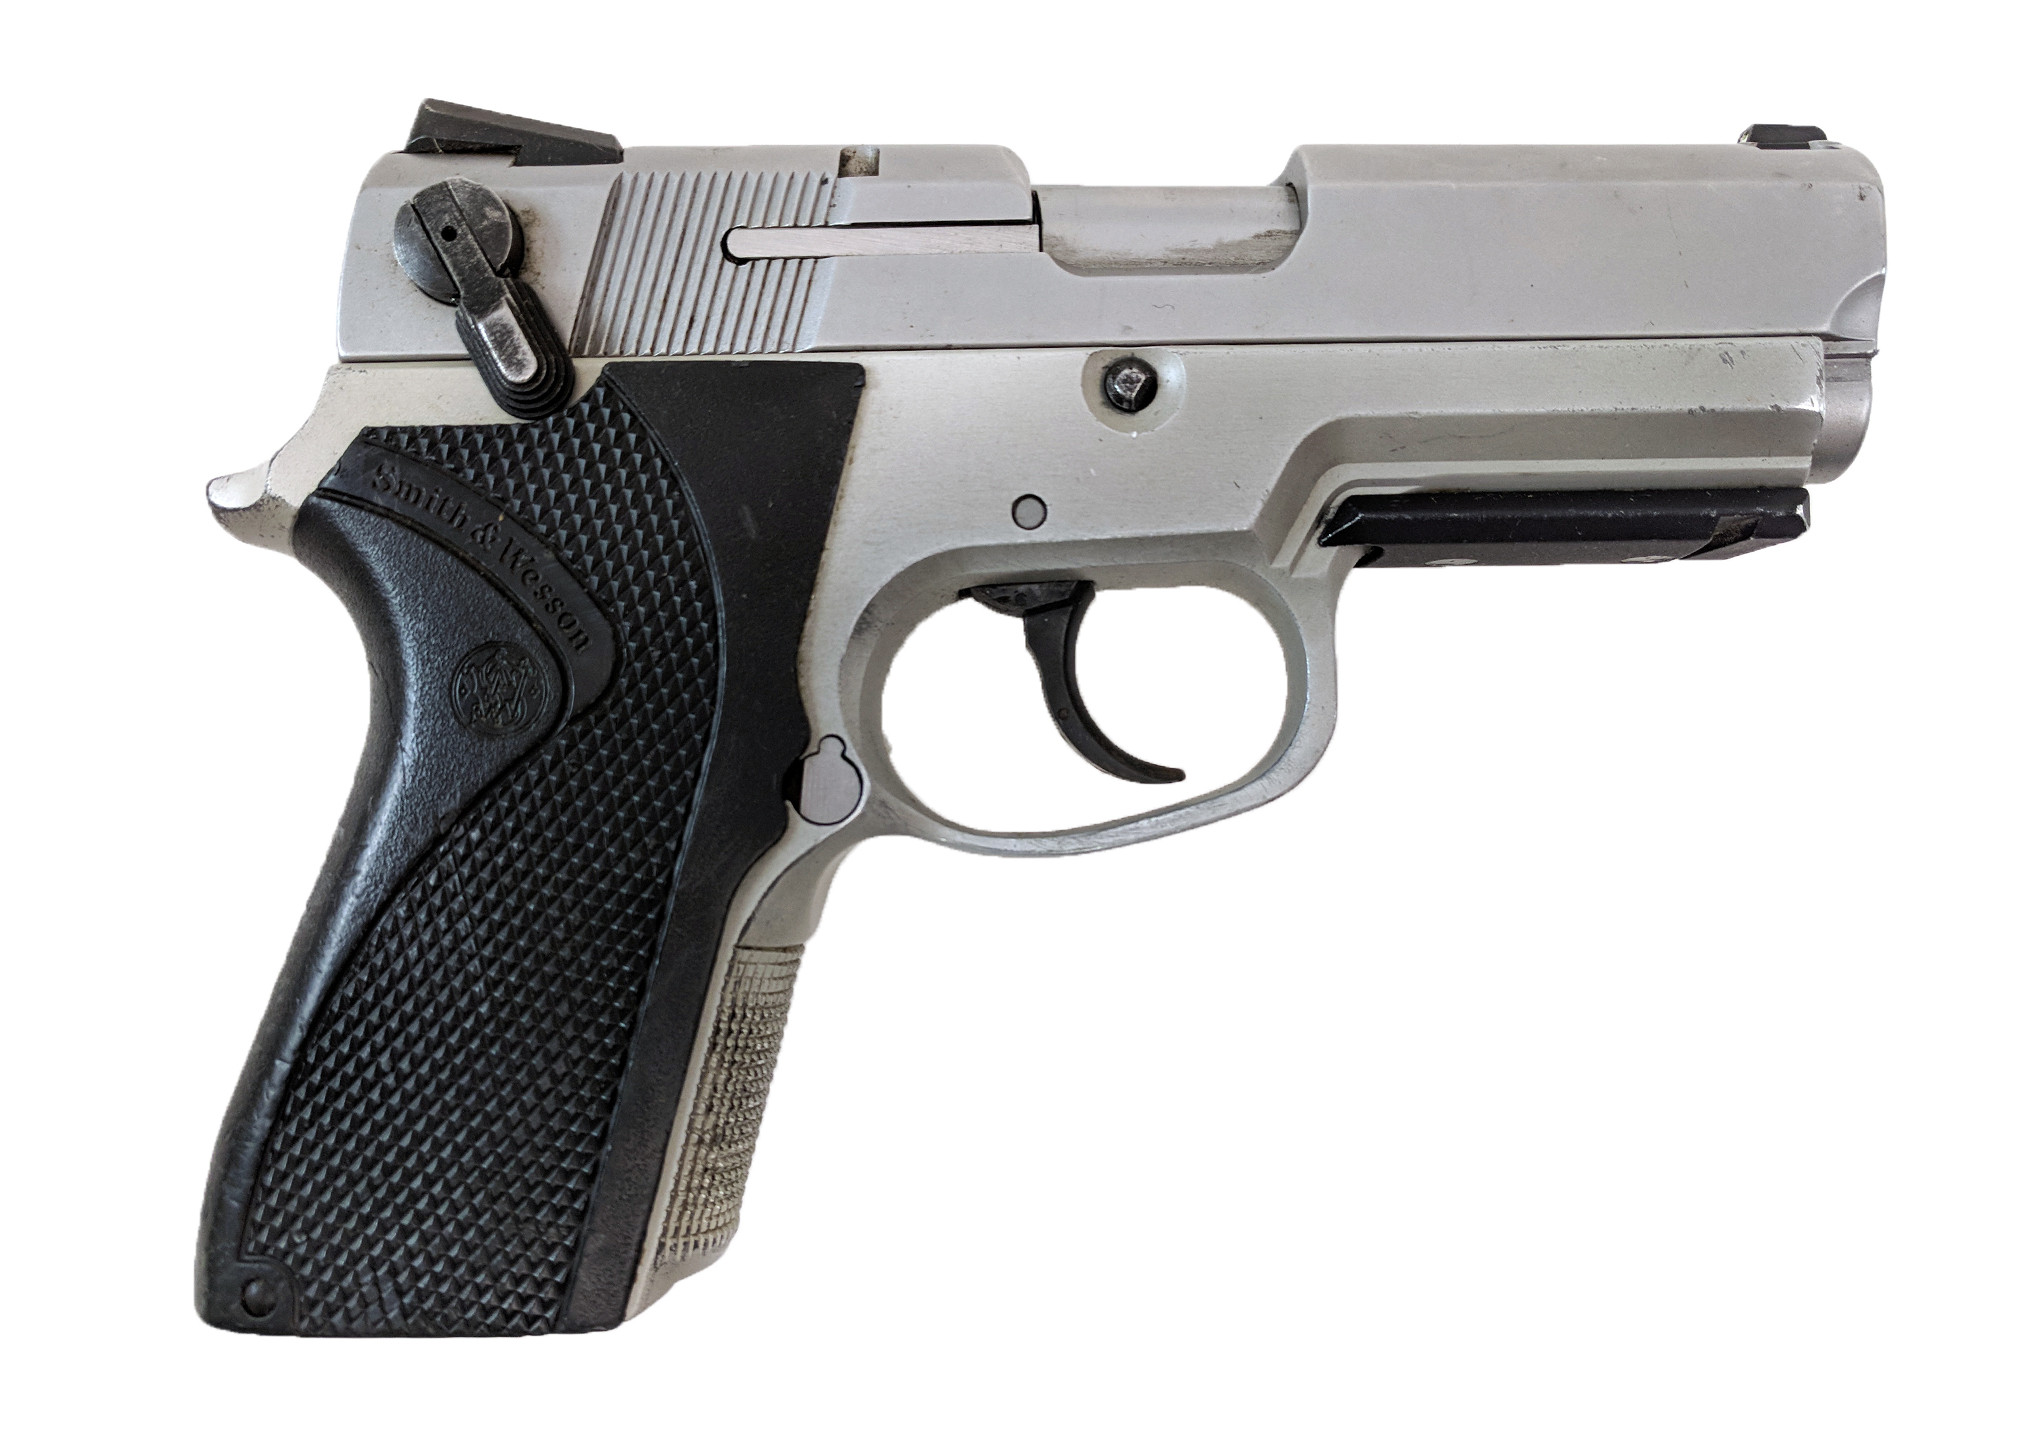 Smith & Wesson 4013 TSW, .40 S&W